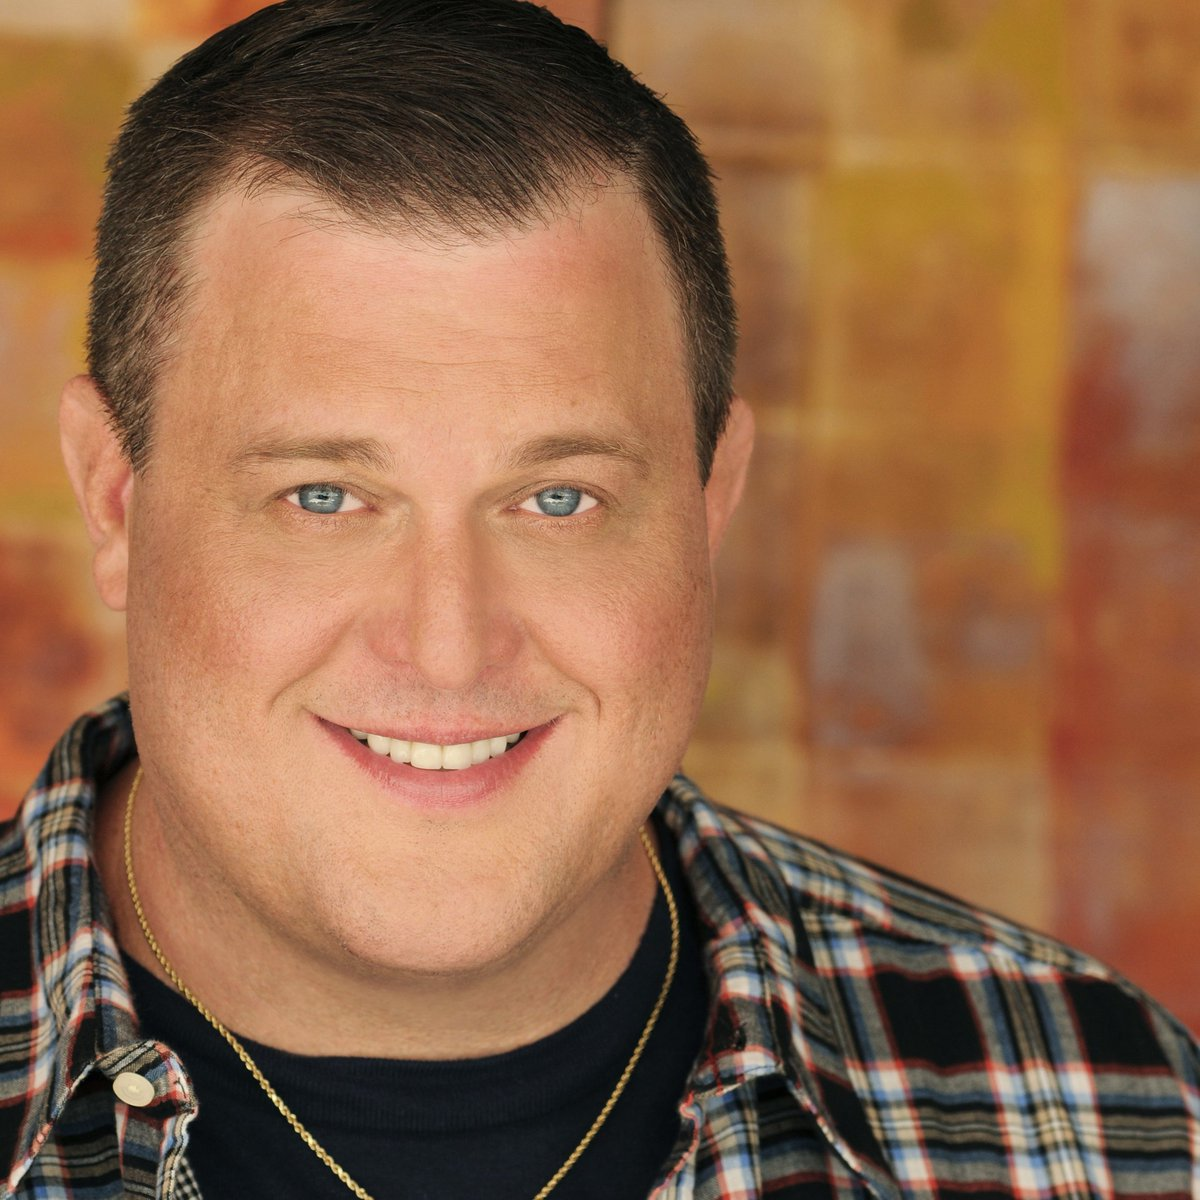 .@BillyGardell of Mike & Molly wants to make you laugh on 5/14! Will you let him? https://t.co/73MCEixHoY https://t.co/FrXLmRCYmN